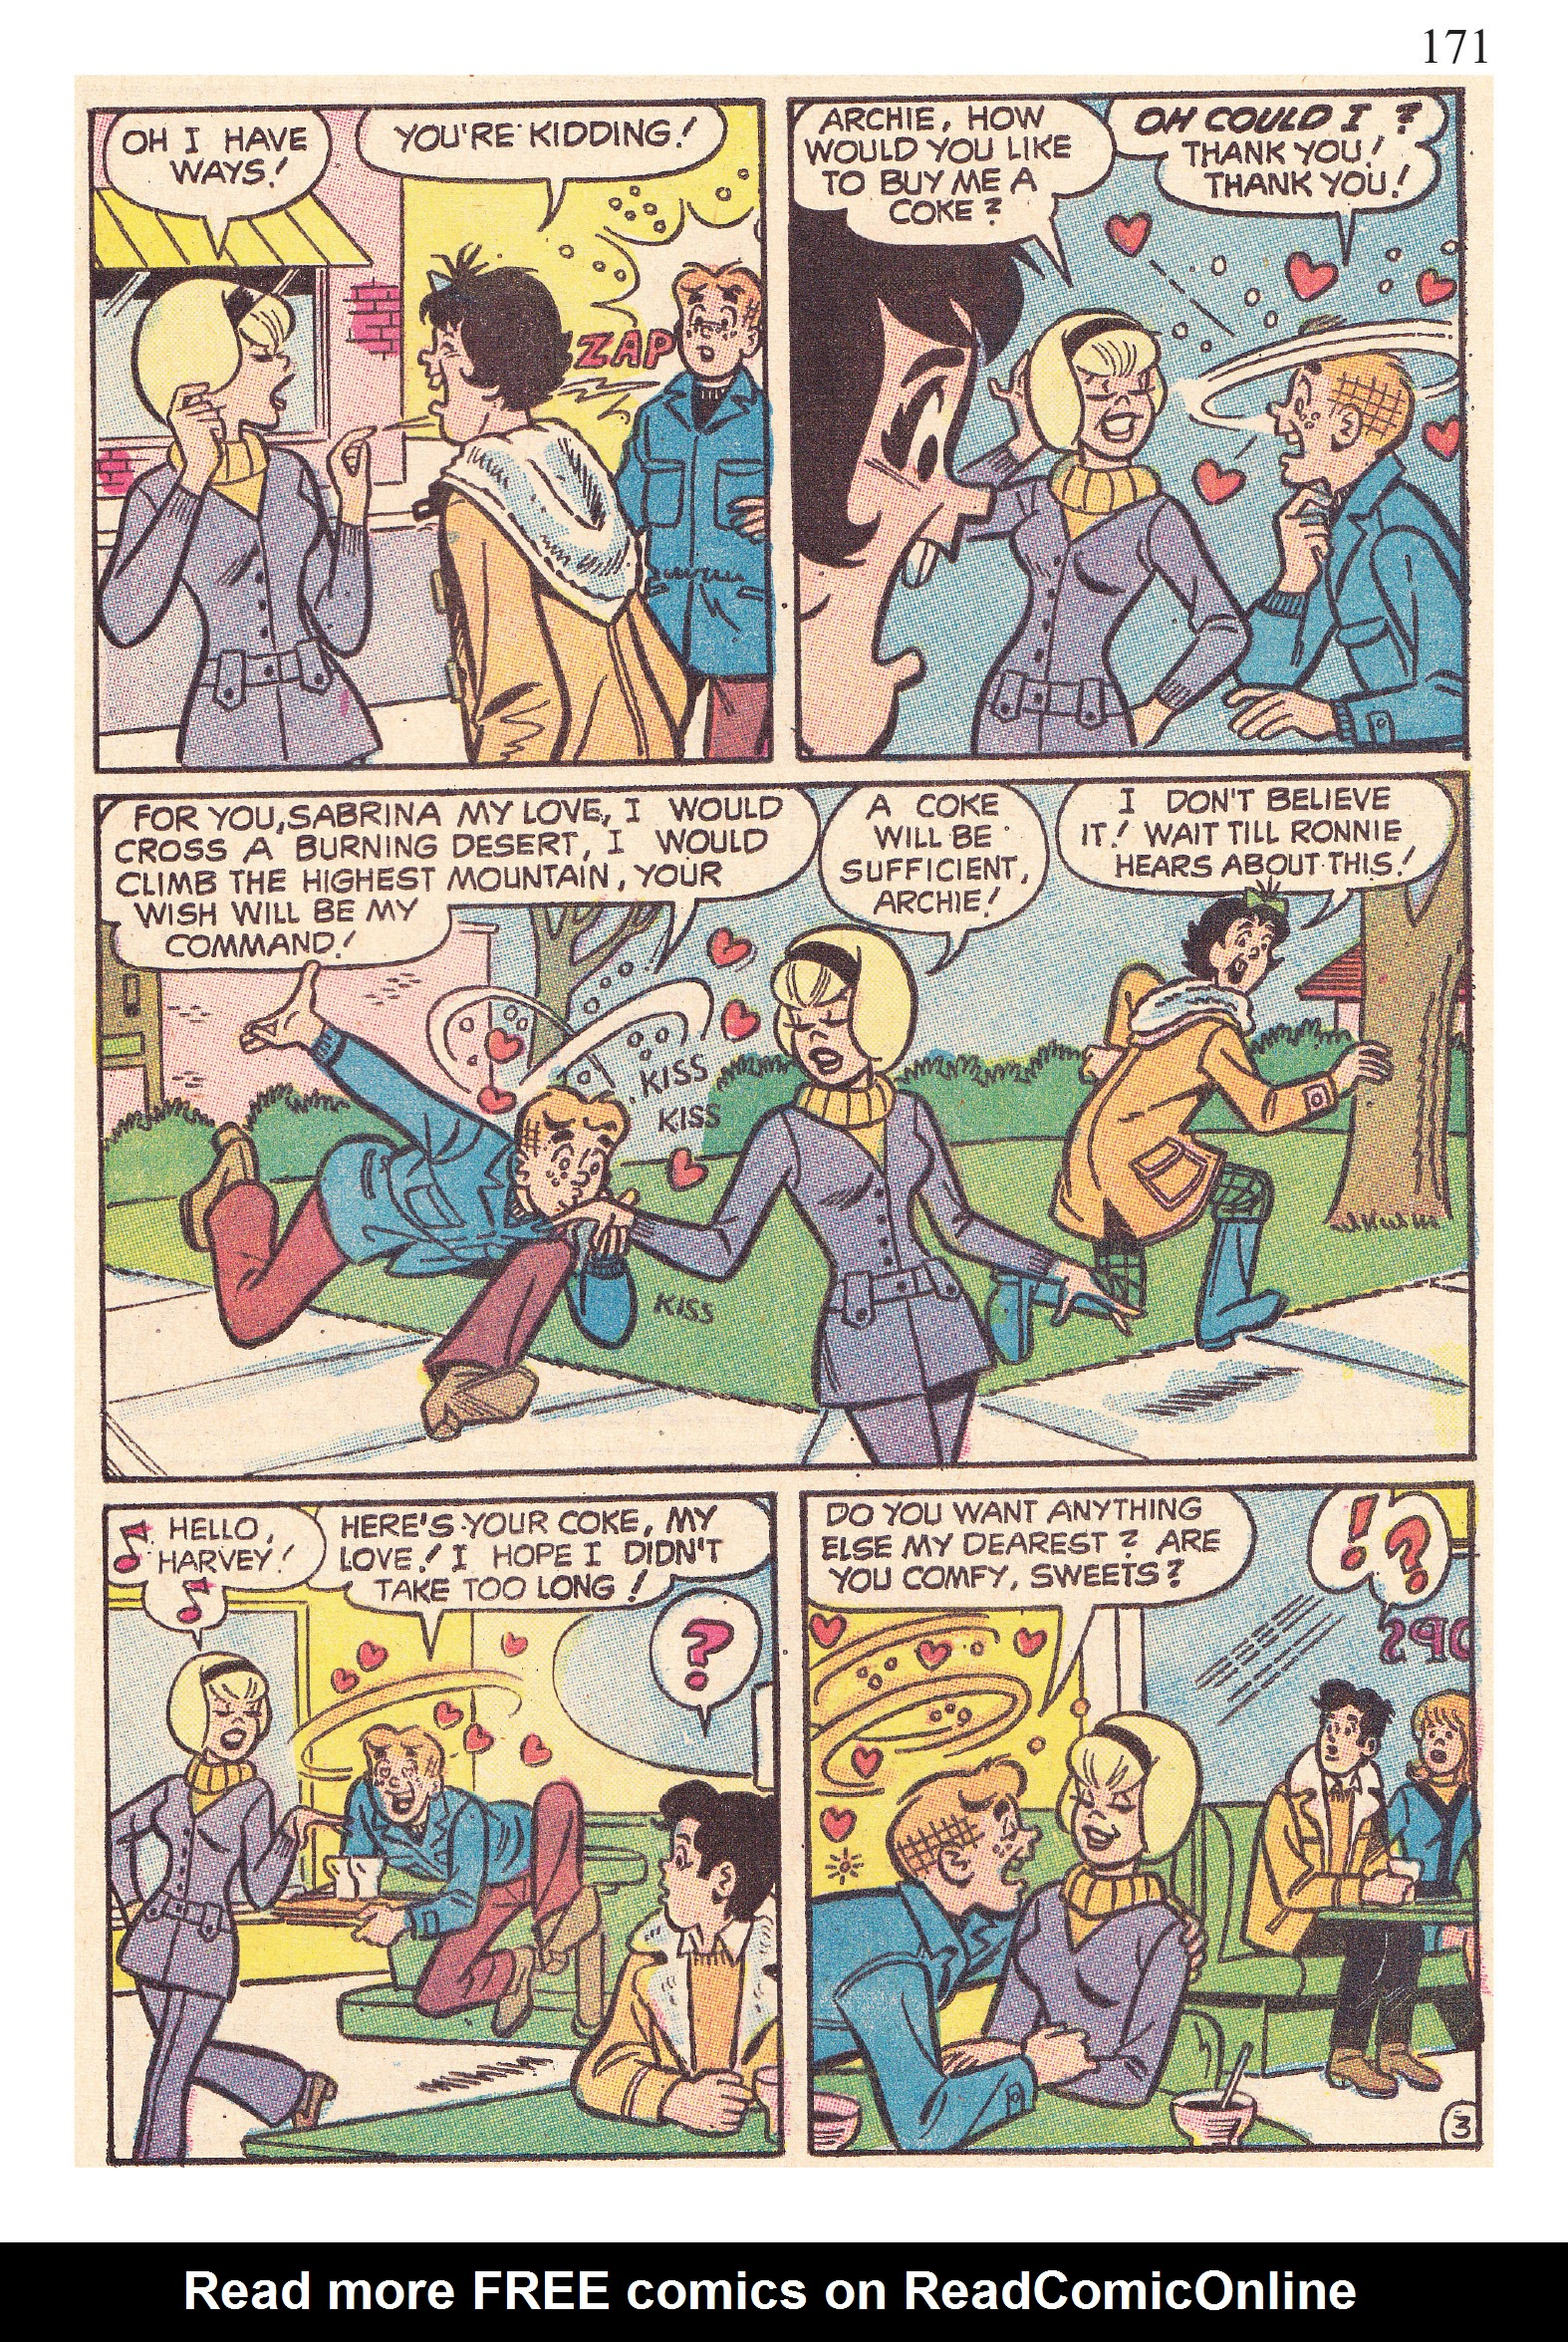 Read online The Best of Archie Comics comic -  Issue # TPB 2 (Part 1) - 173